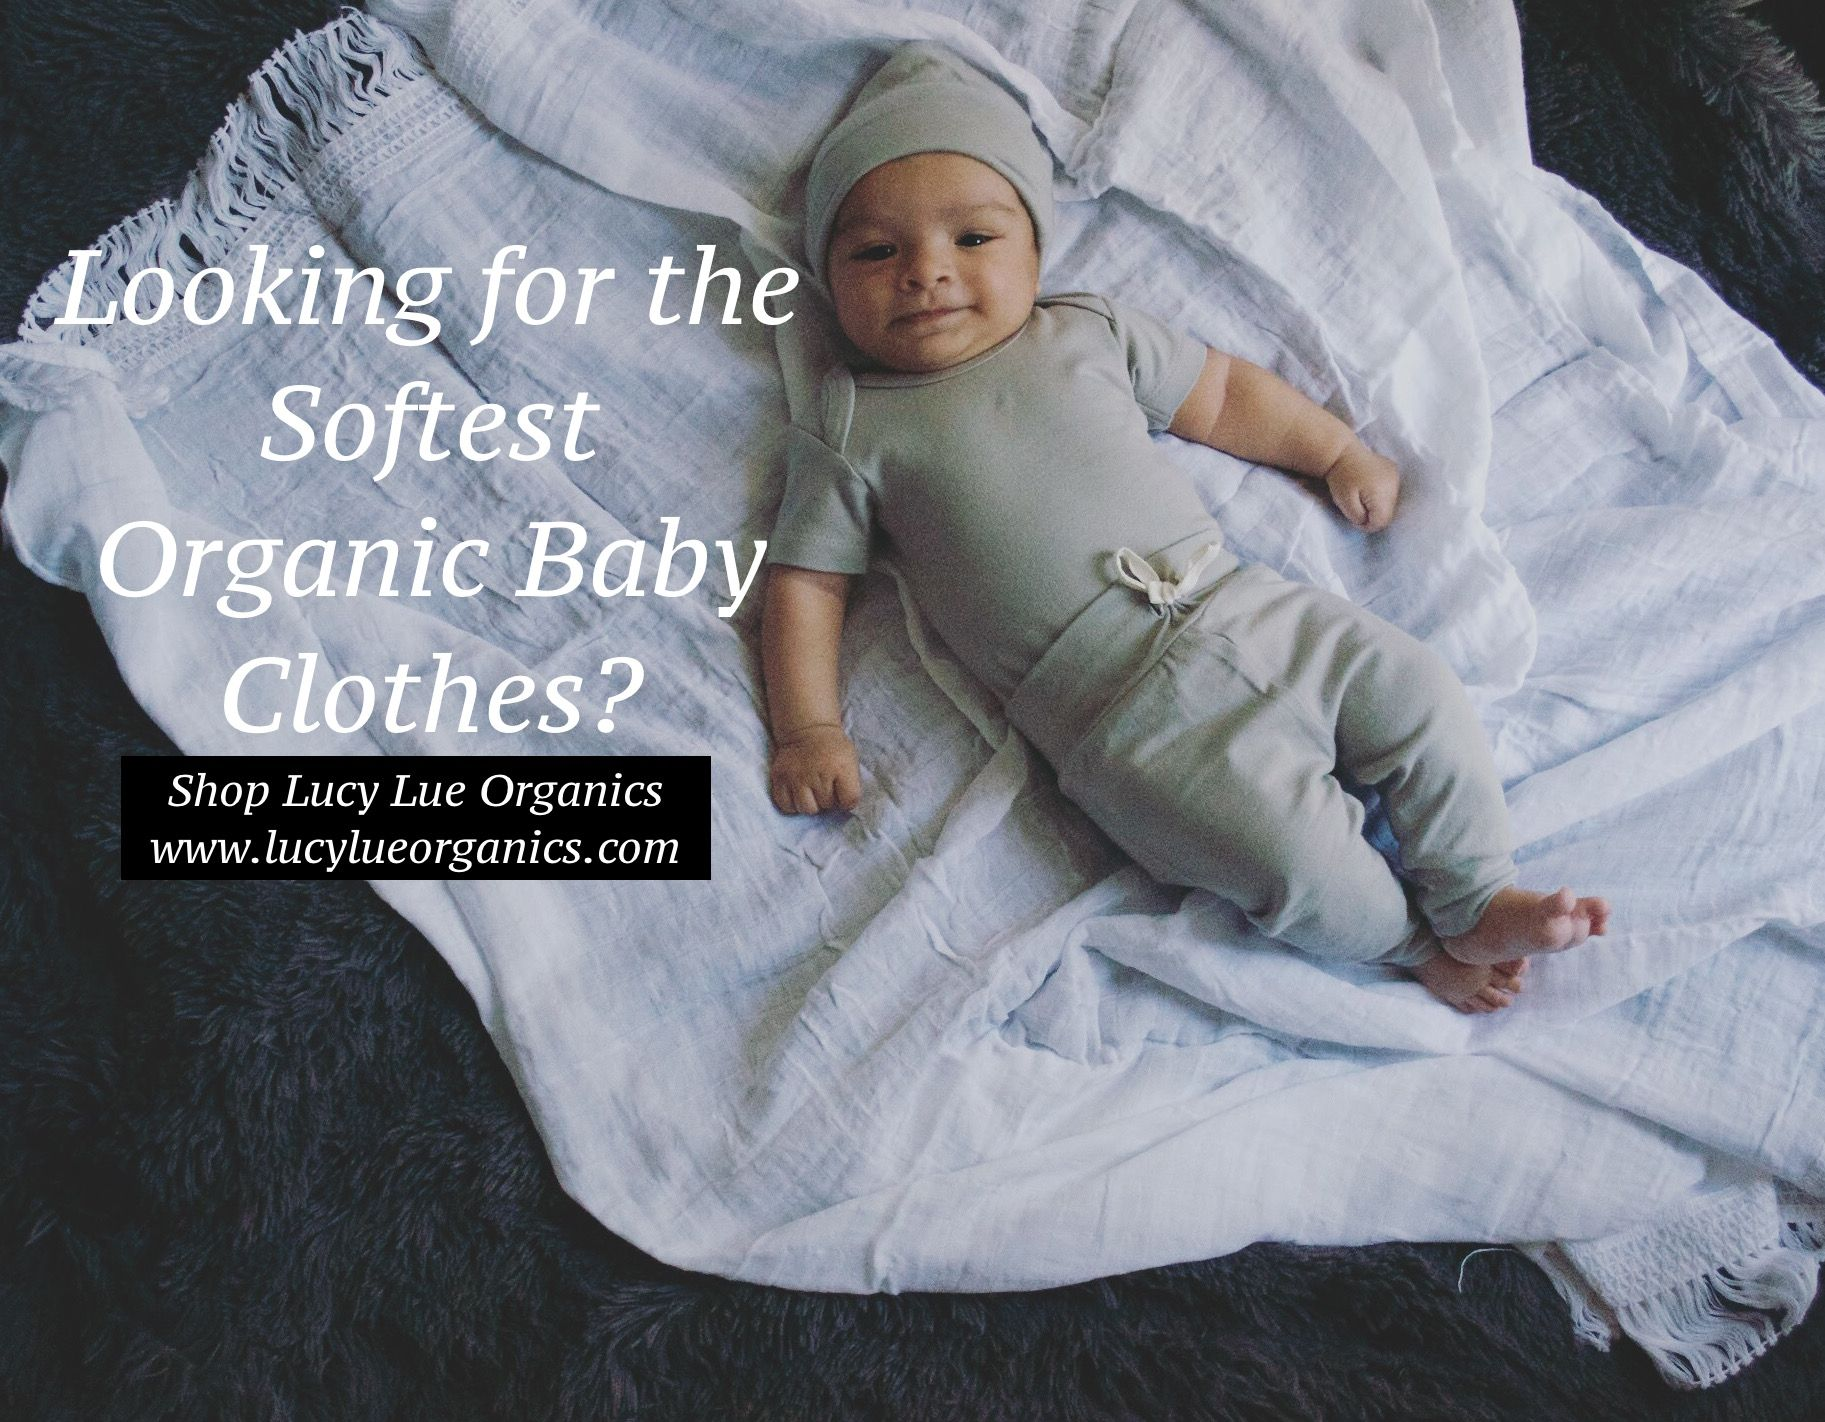 To shop this exclusive look visit Lucy Lue Organics for the softest